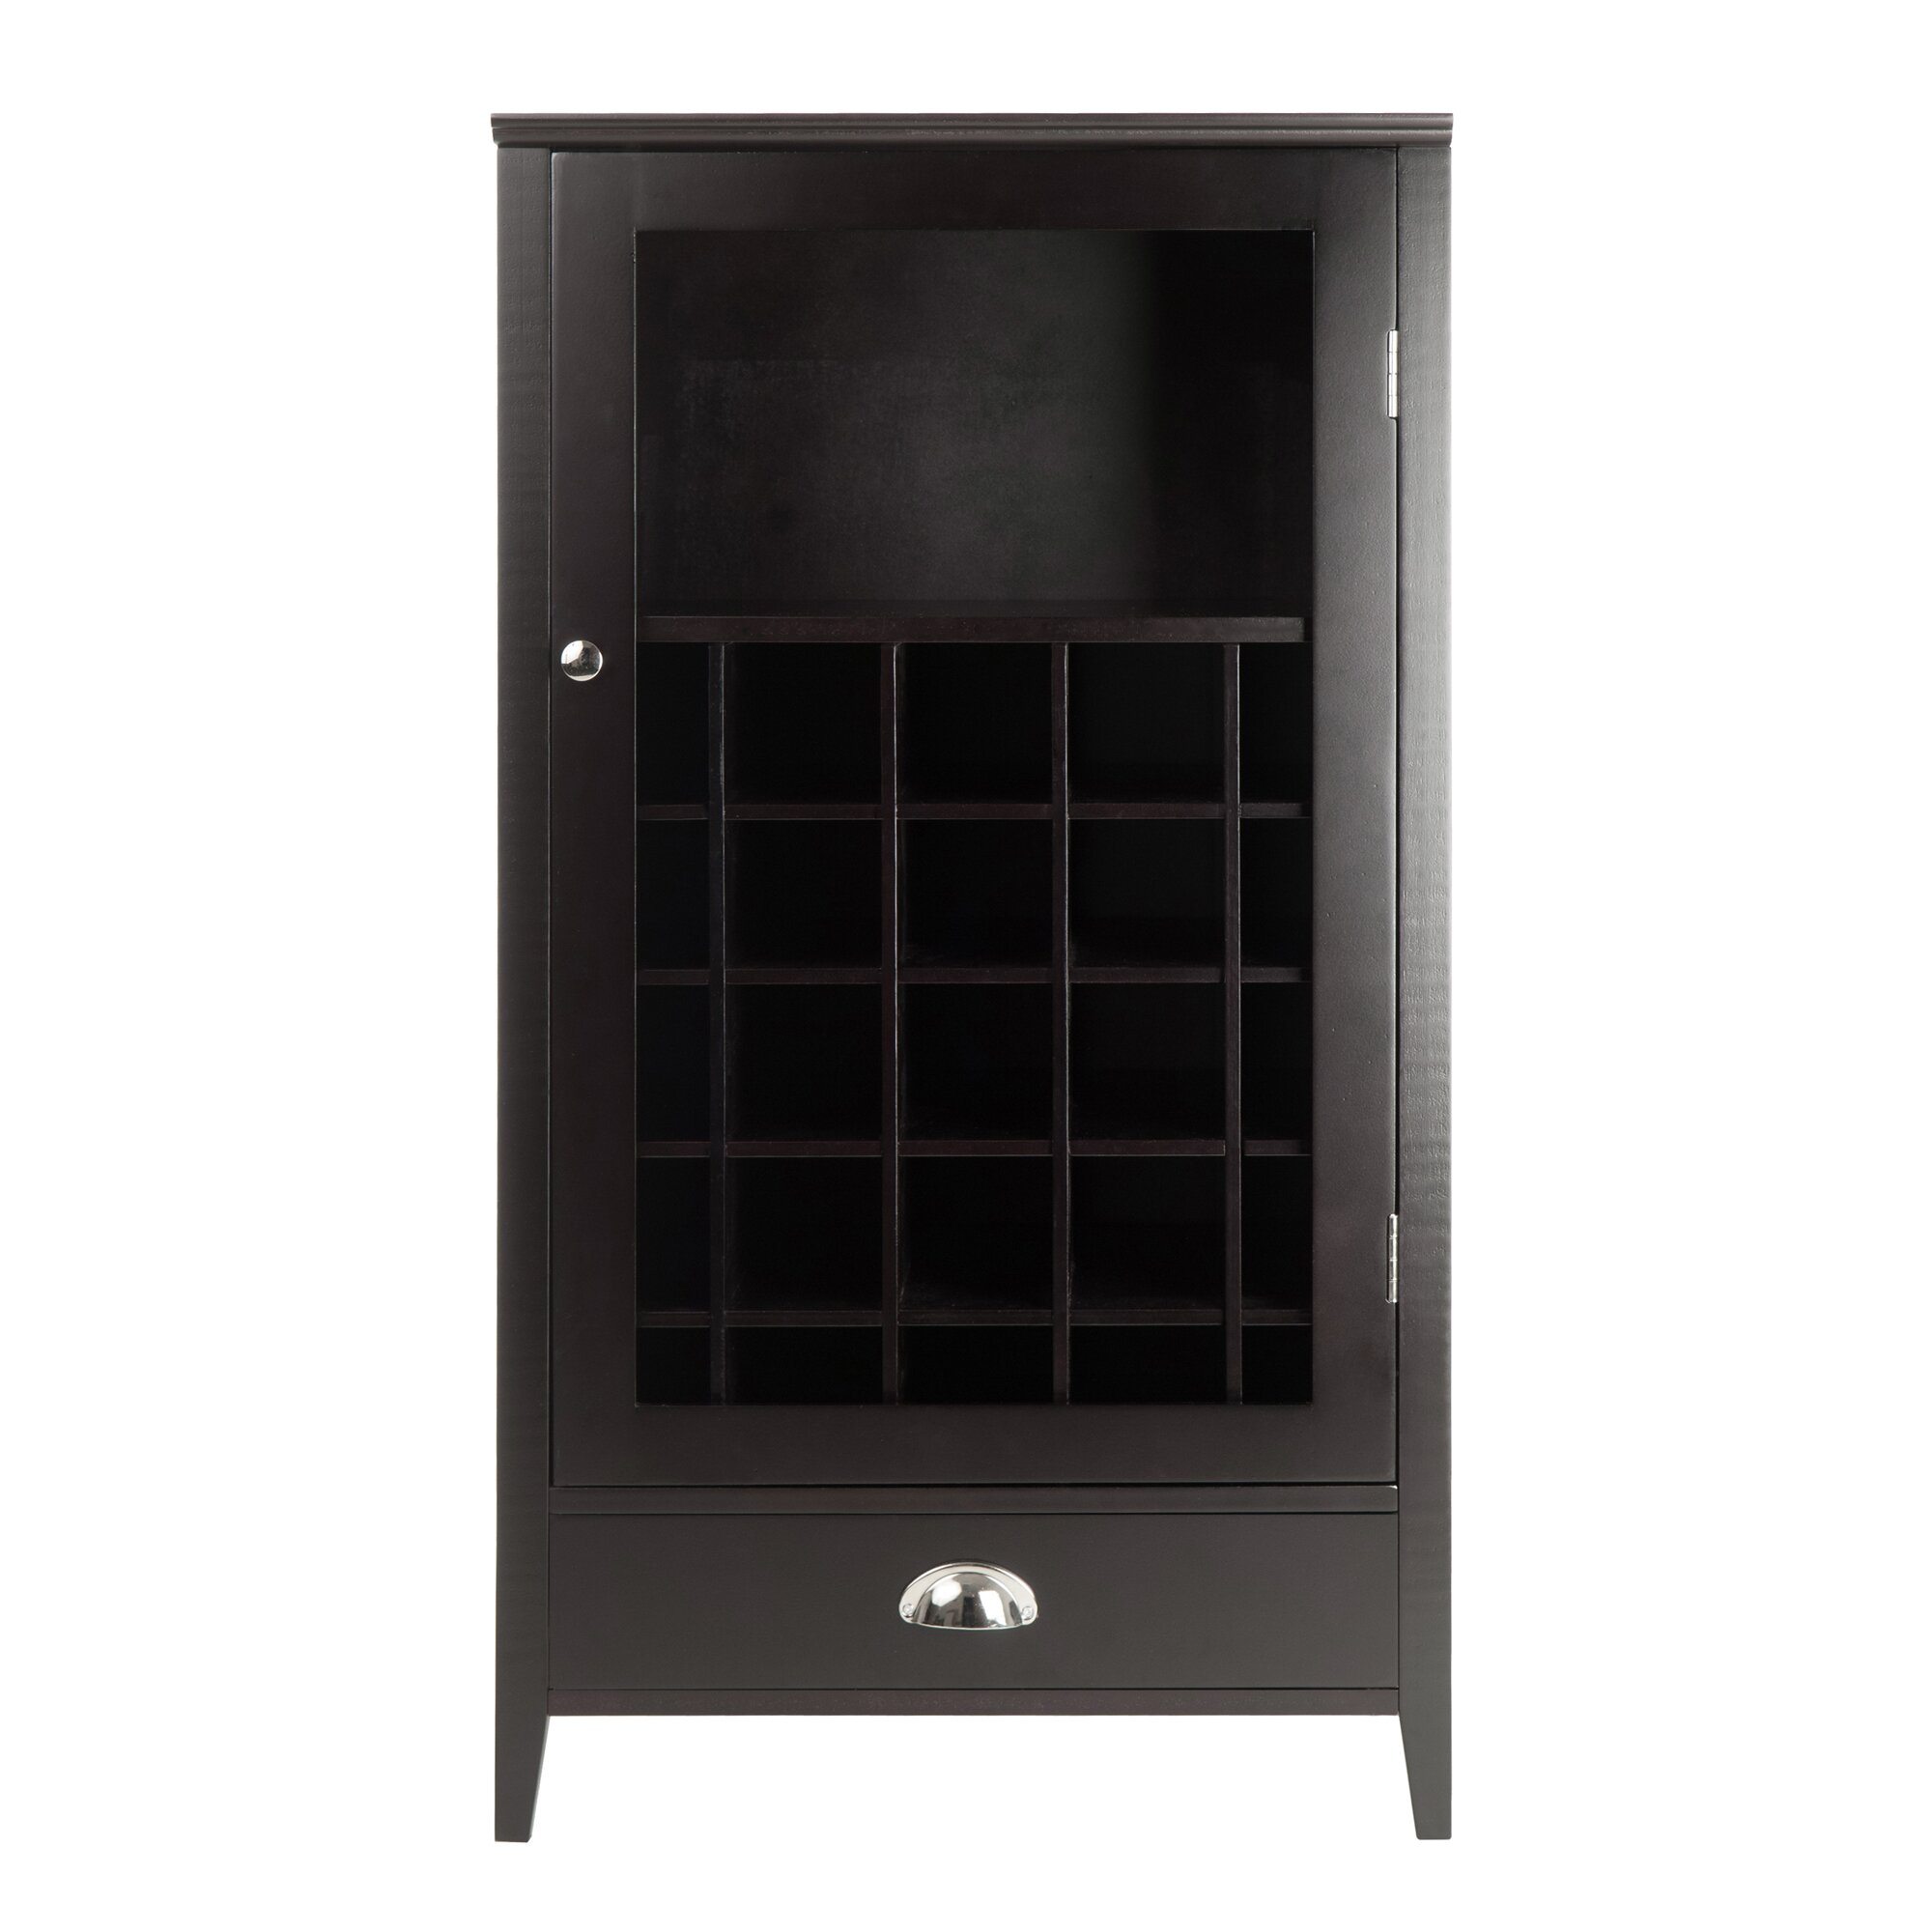 Winsome bordeaux 25 bottle floor wine cabinet reviews for Floor wine cabinet